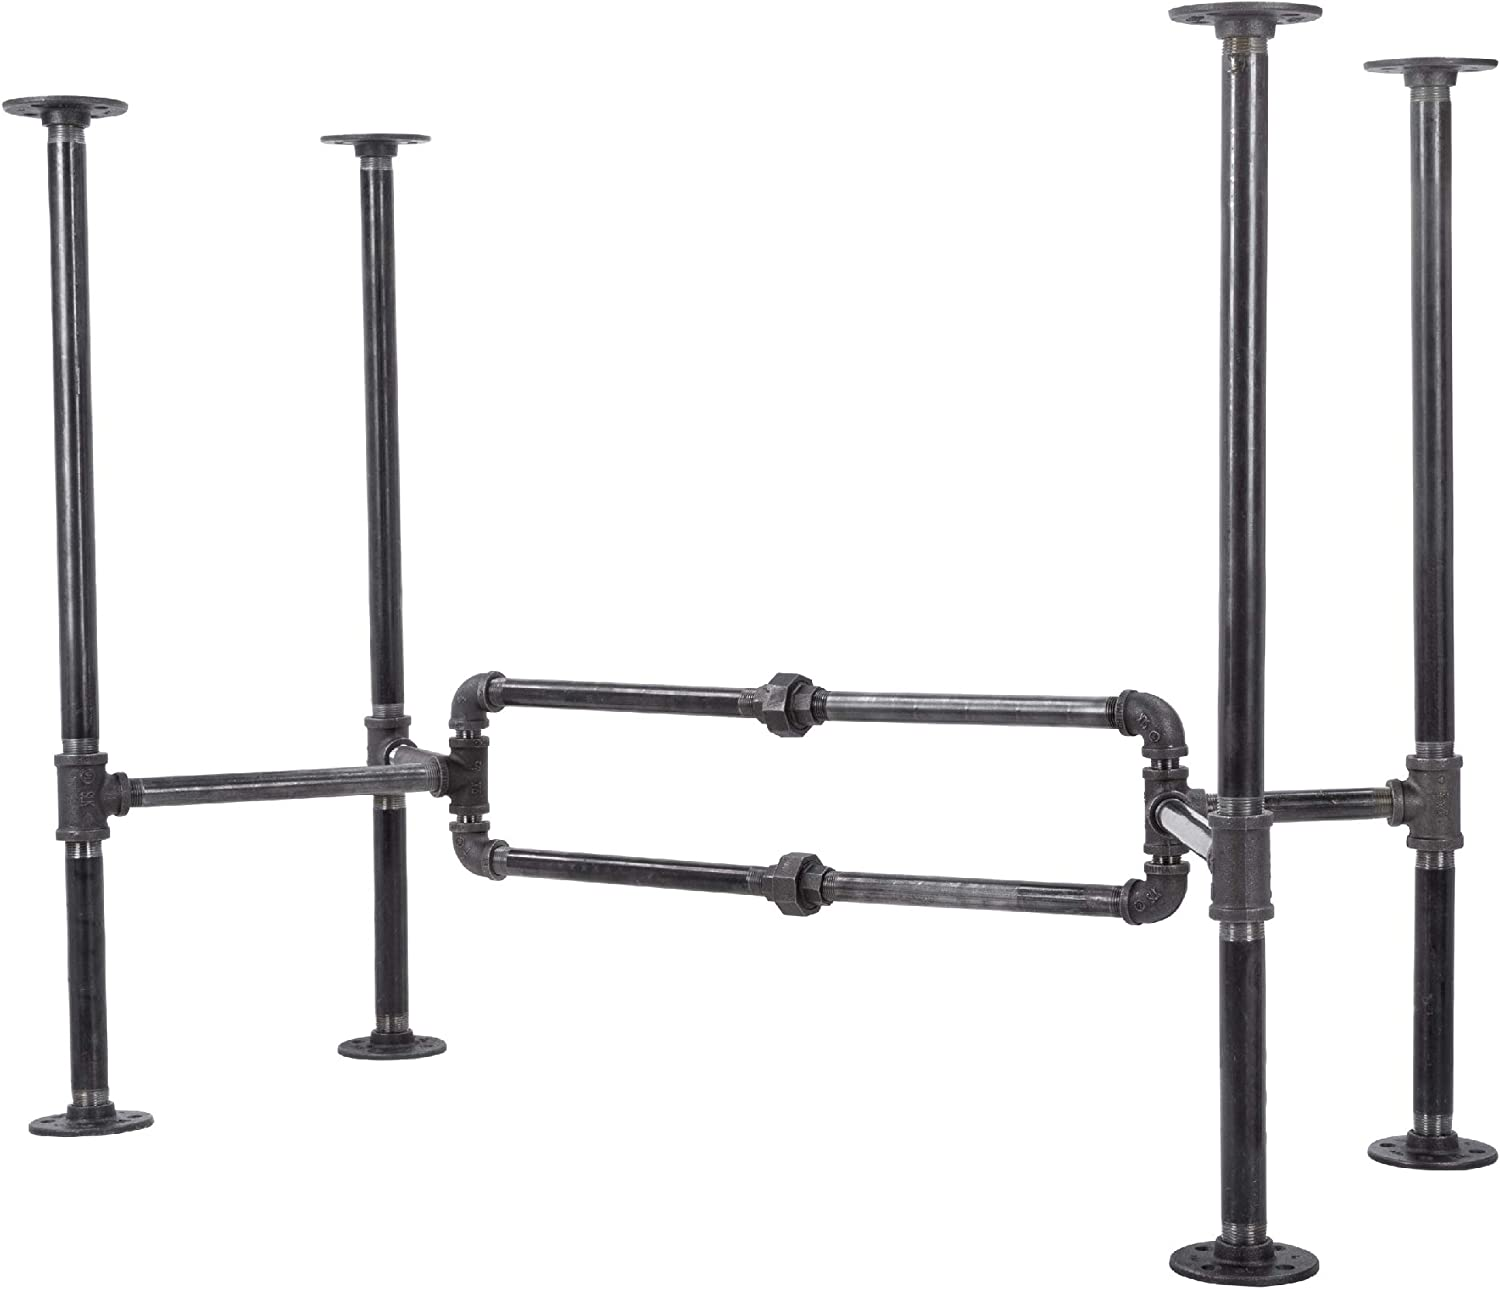 Industrial Pipe Desk Leg Set by Pipe Decor, Modern Home Office Table Writing or Computer Base Kit, Dark Grey Black Rough Pipes, Rustic Vintage Furniture Unfinished Steel Metal Pipe Legs, O-Desk Style